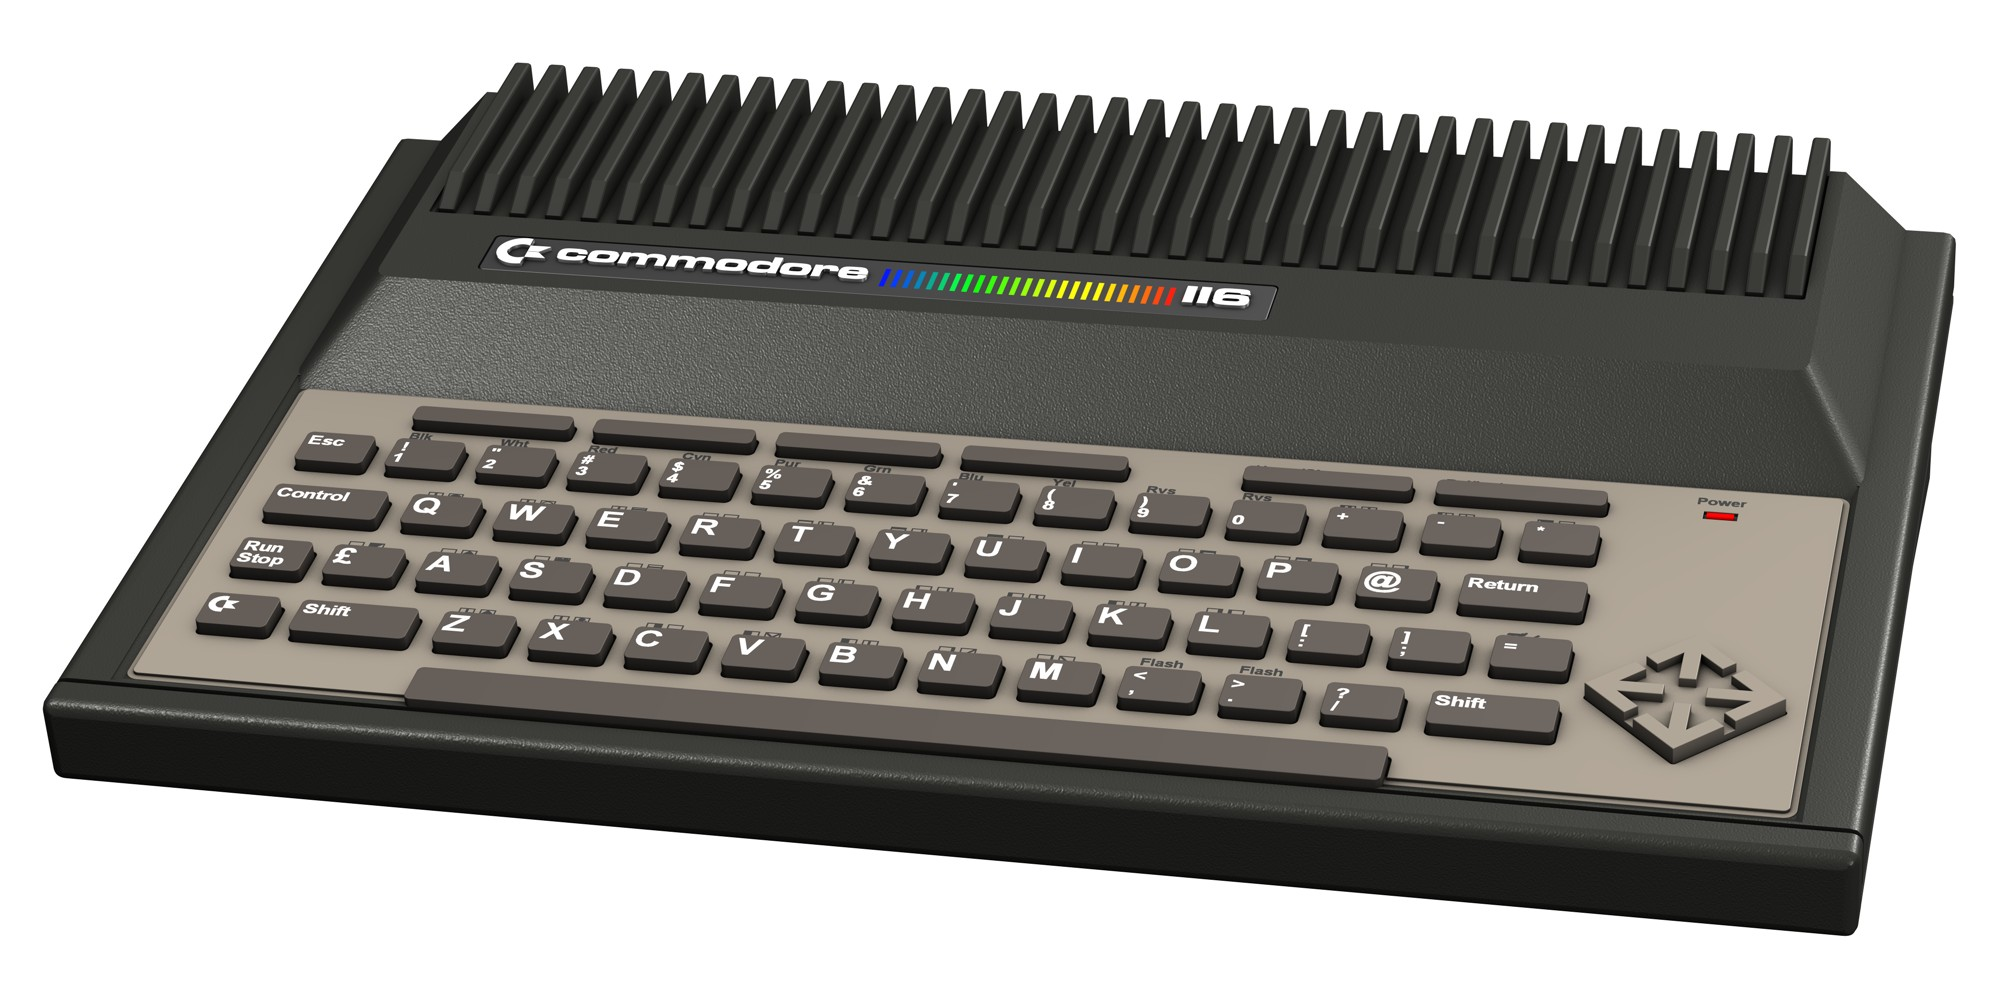 CCOM - Commodore 16 / 116 / plus4